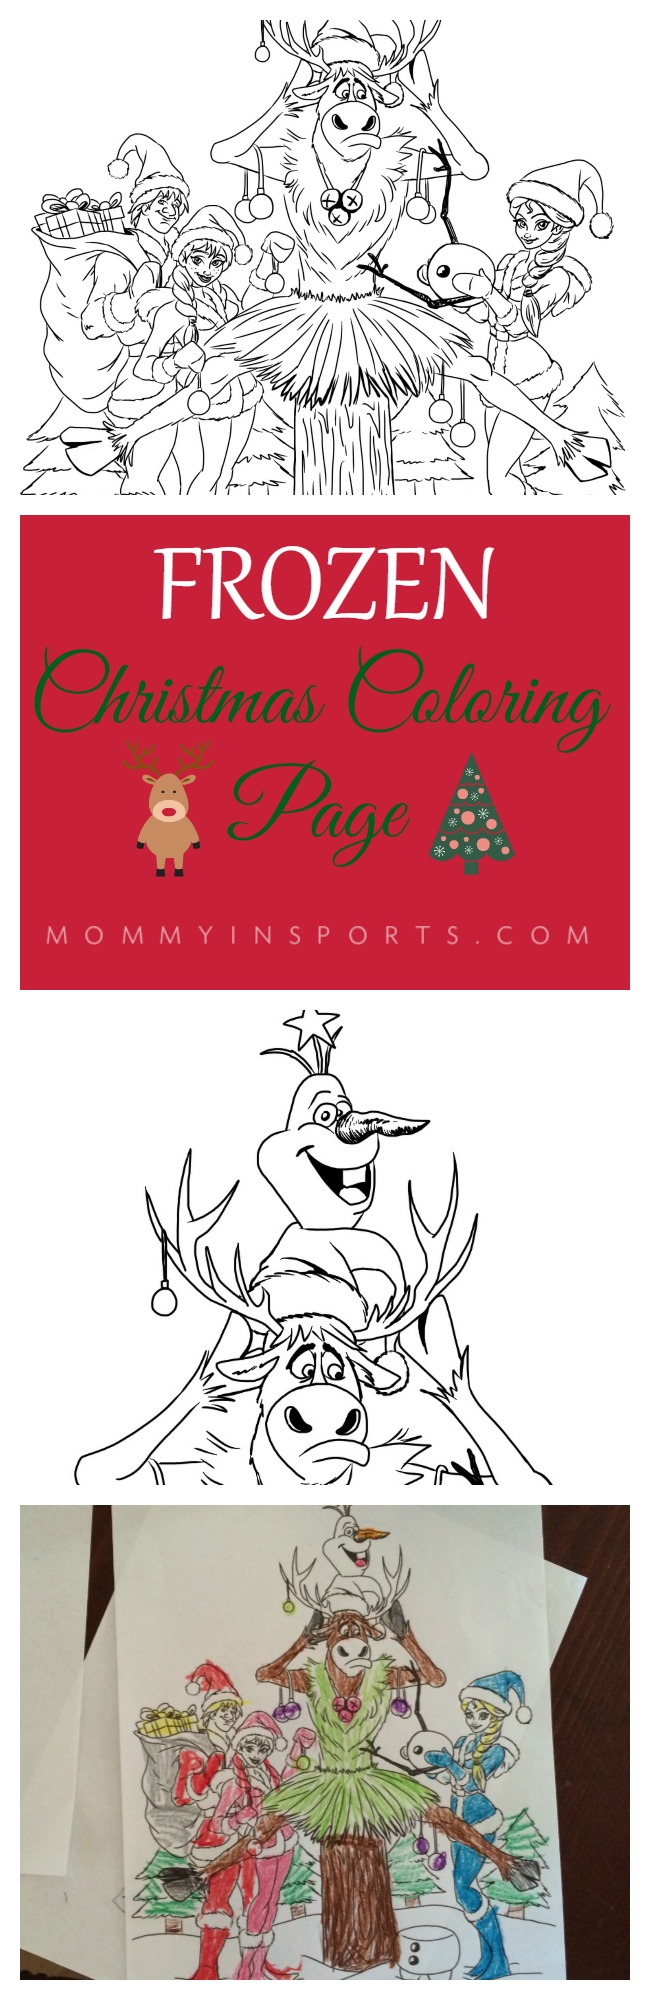 Free Frozen Christmas Coloring Page Original Art Your Kids Will LOVE